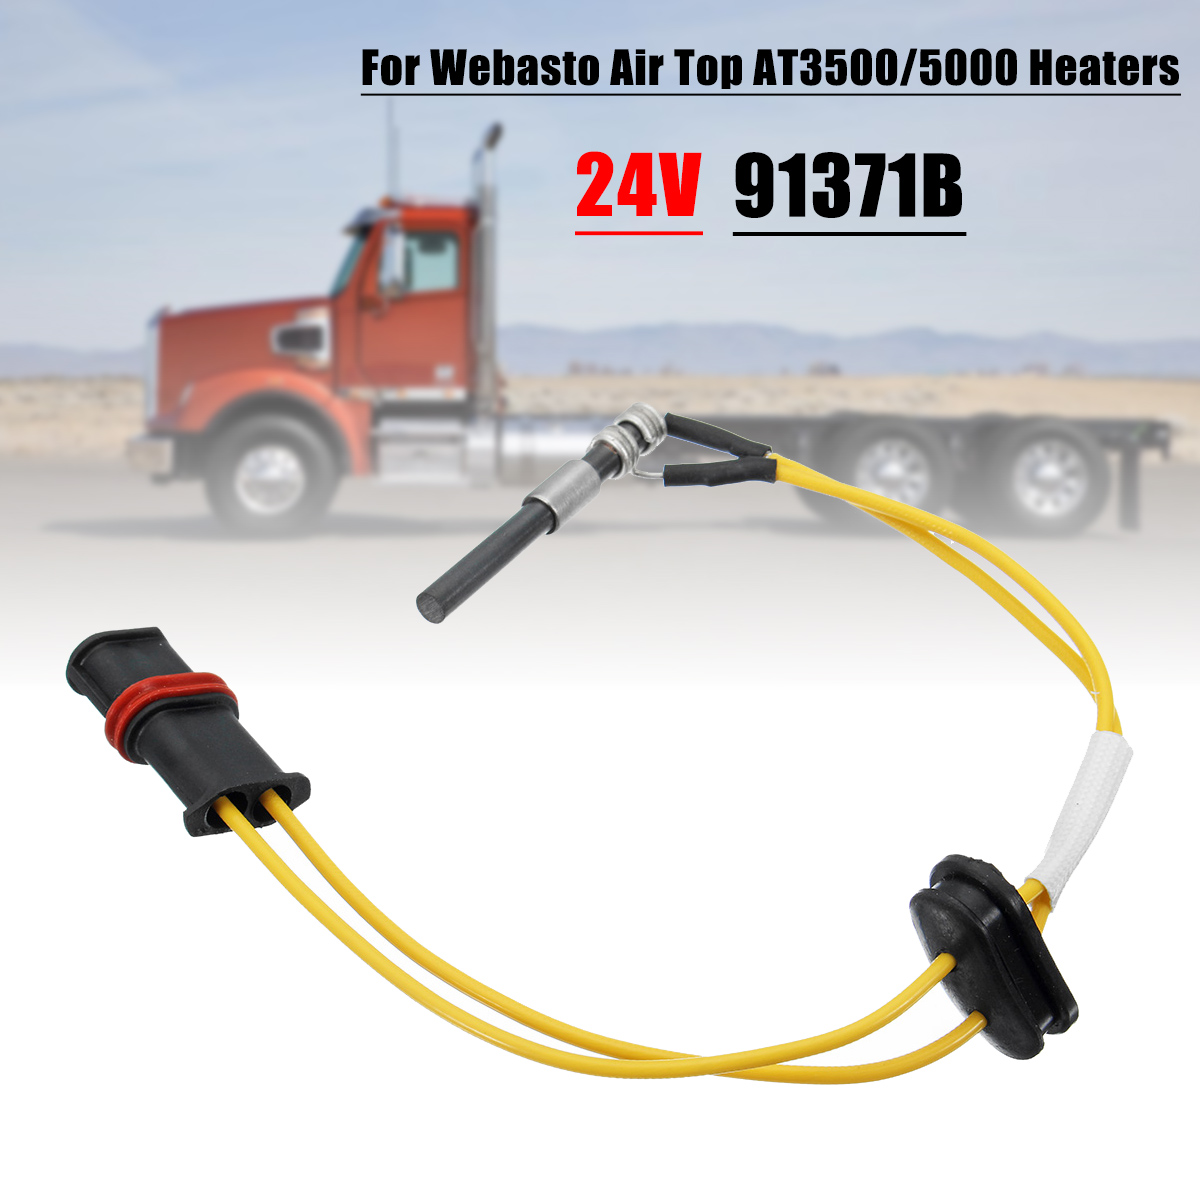 91371B 24V Heater Glow Plug For Webasto AT3500 /5000 Air Parking Truck Boat Glow Plugs